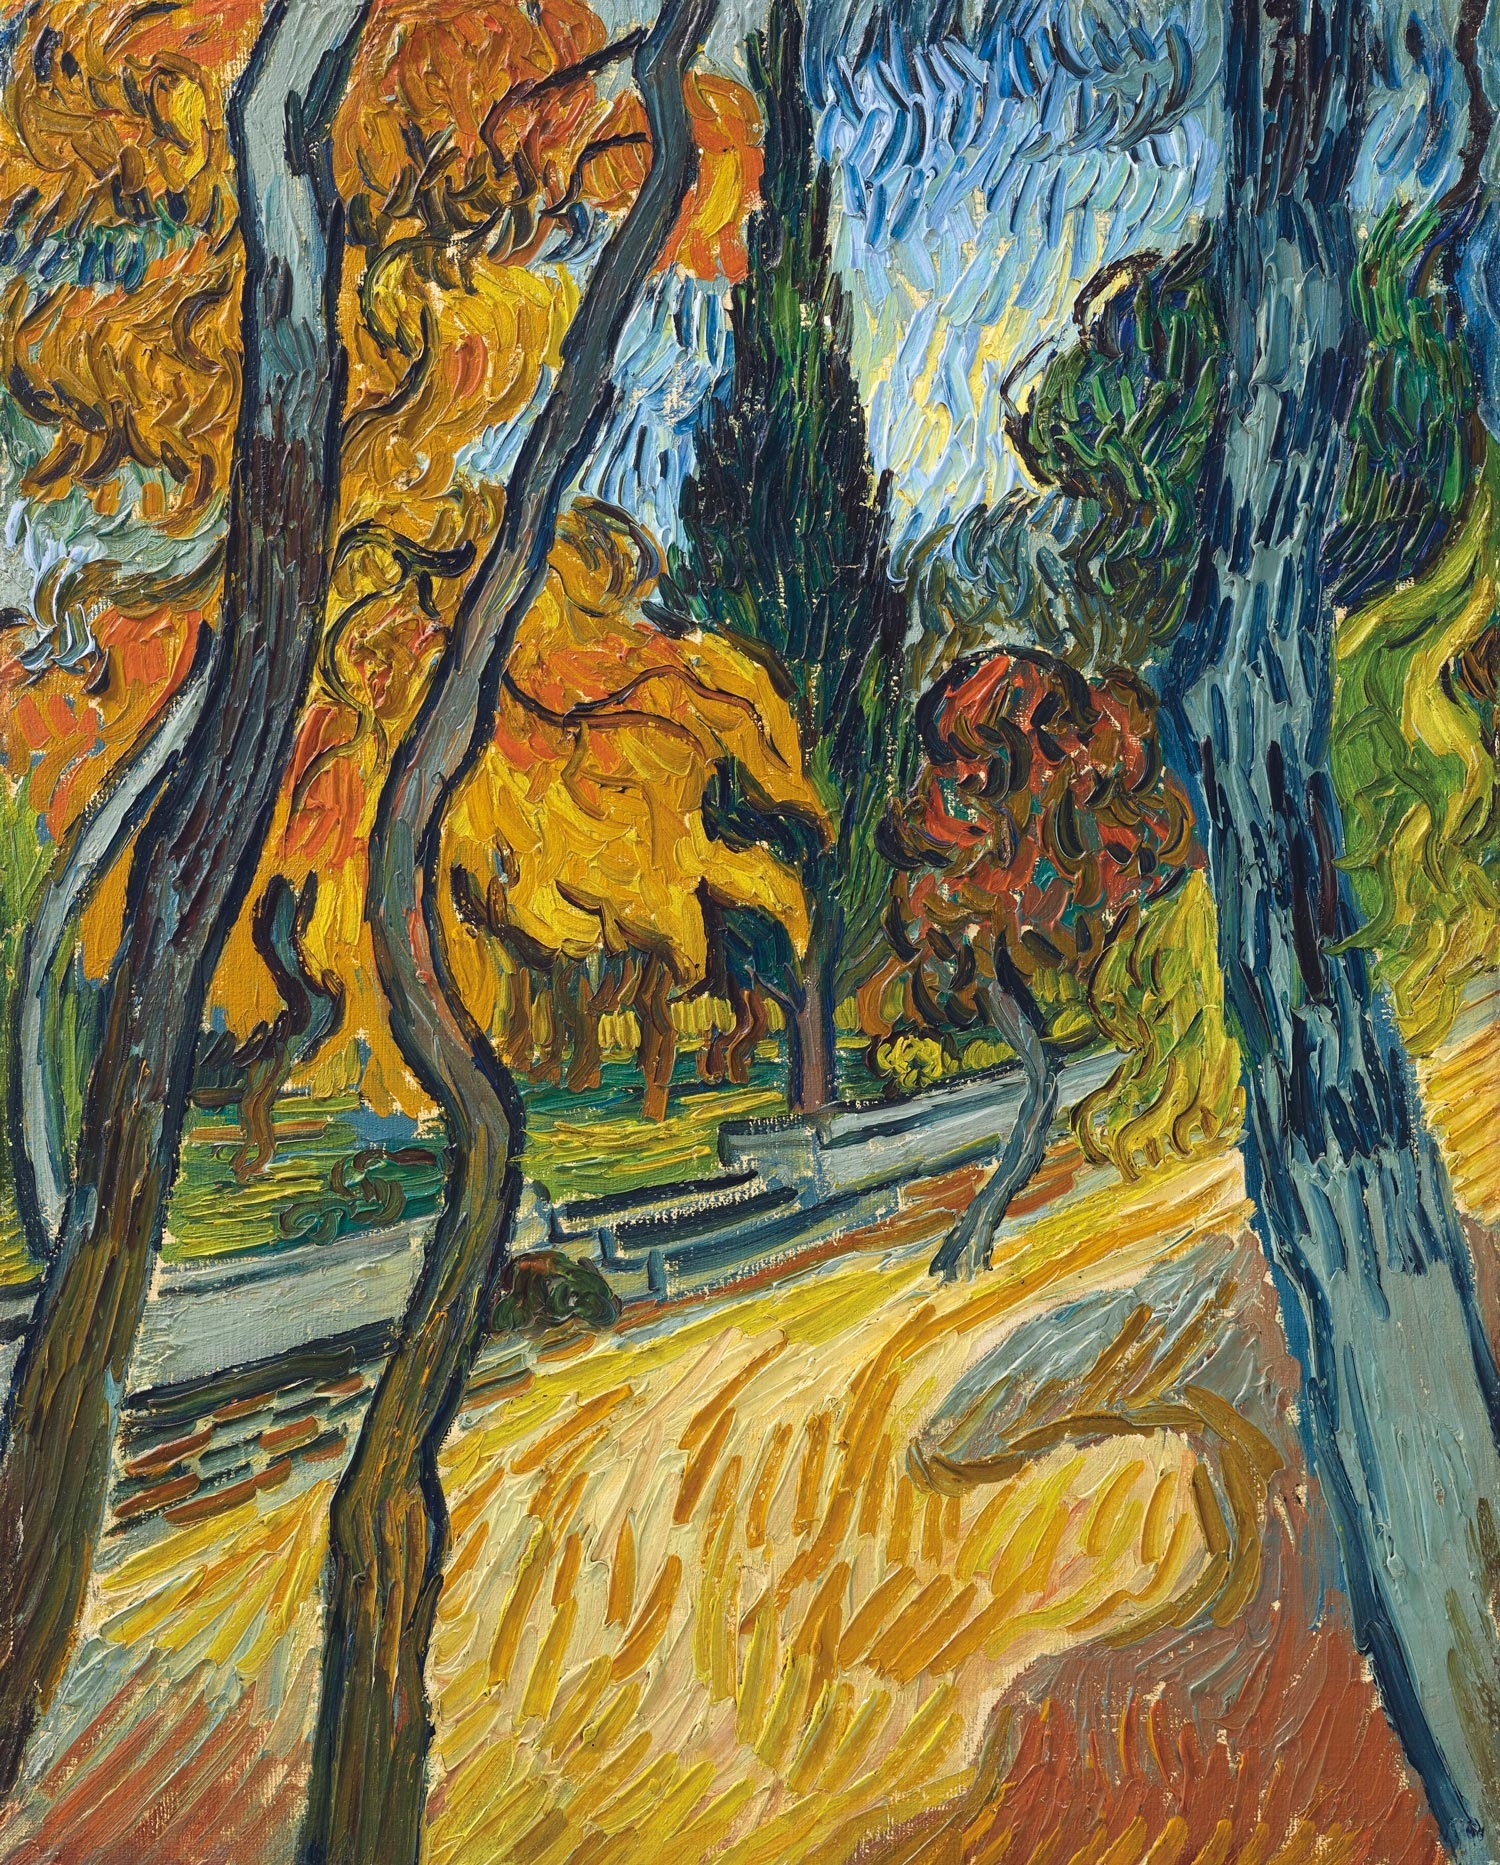 Vincent van Gogh (1853-1890), Arbres dans le jardin de l'asile, October, 1889. Oil on canvas. 16 ¼ x 13 ¼ in. Estimate on request. Offered in the Impressionist and Modern Art Evening Sale on 13 May at Christie's in New York. Newhouse Masterpieces from the Collection of S.I. Newhouse